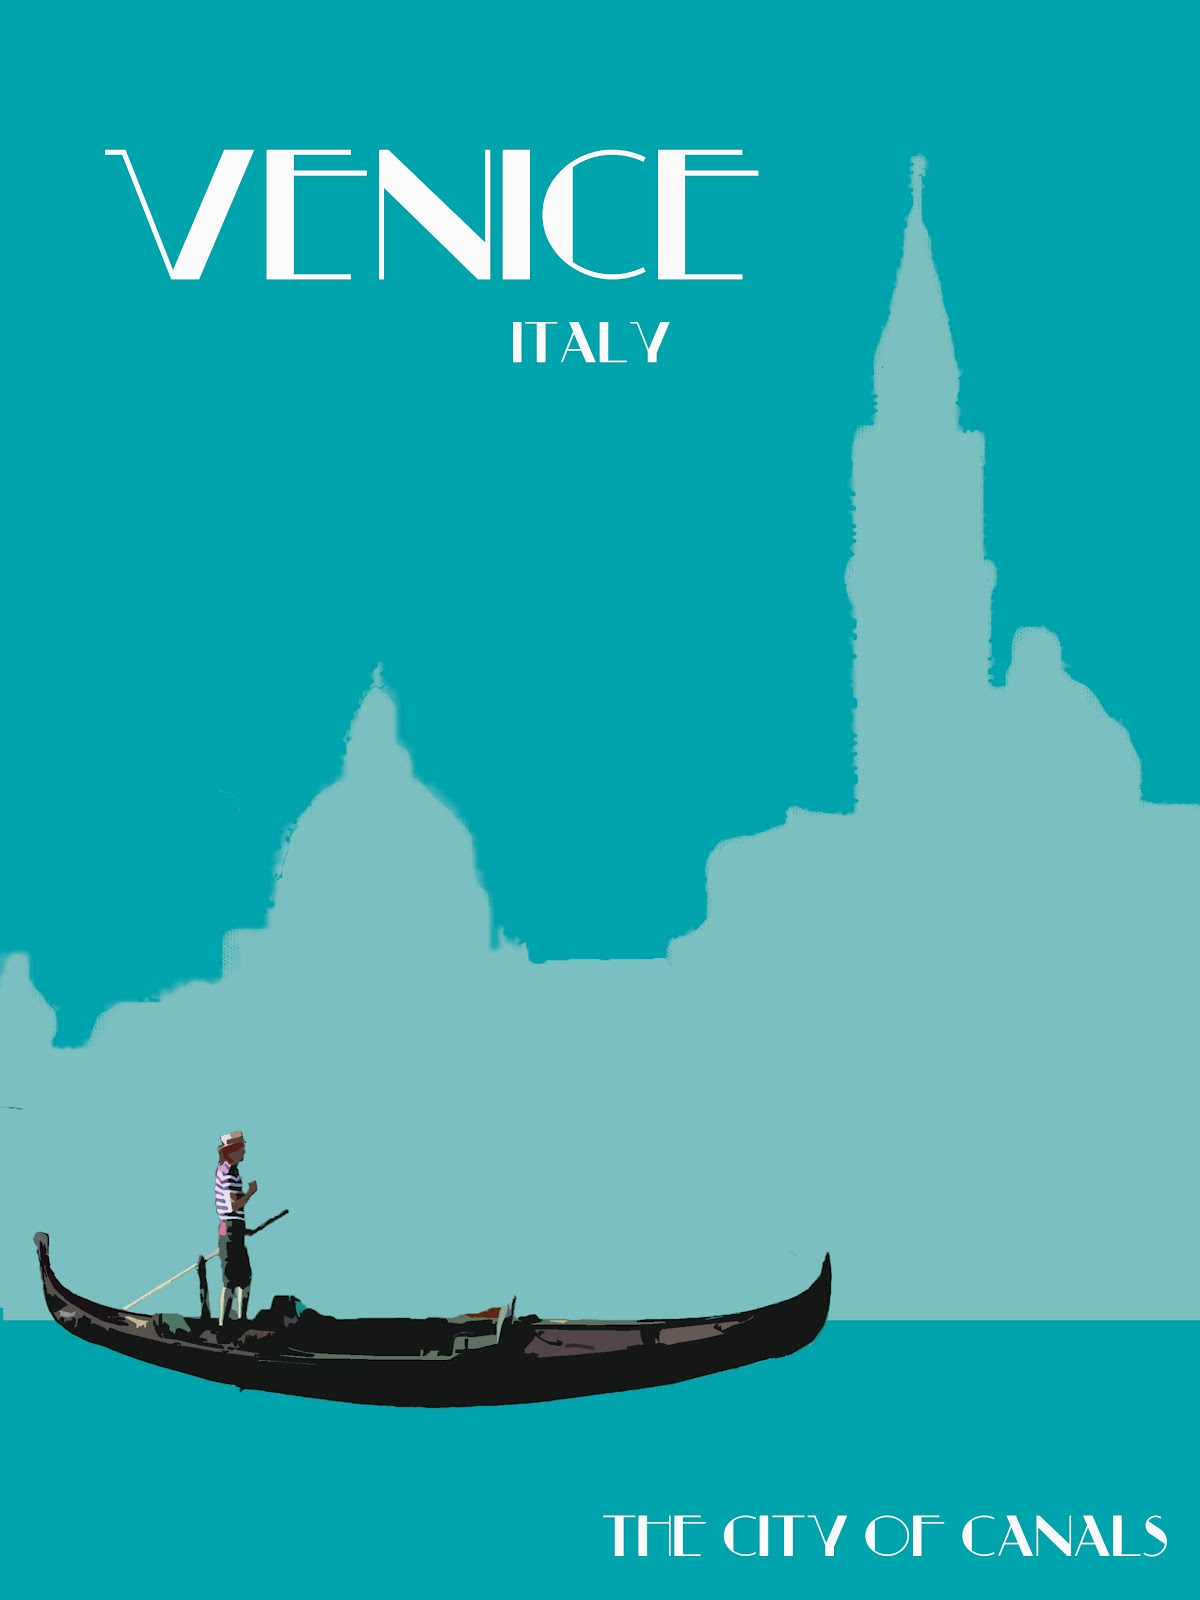 Art Deco Travel Posters: July 2012